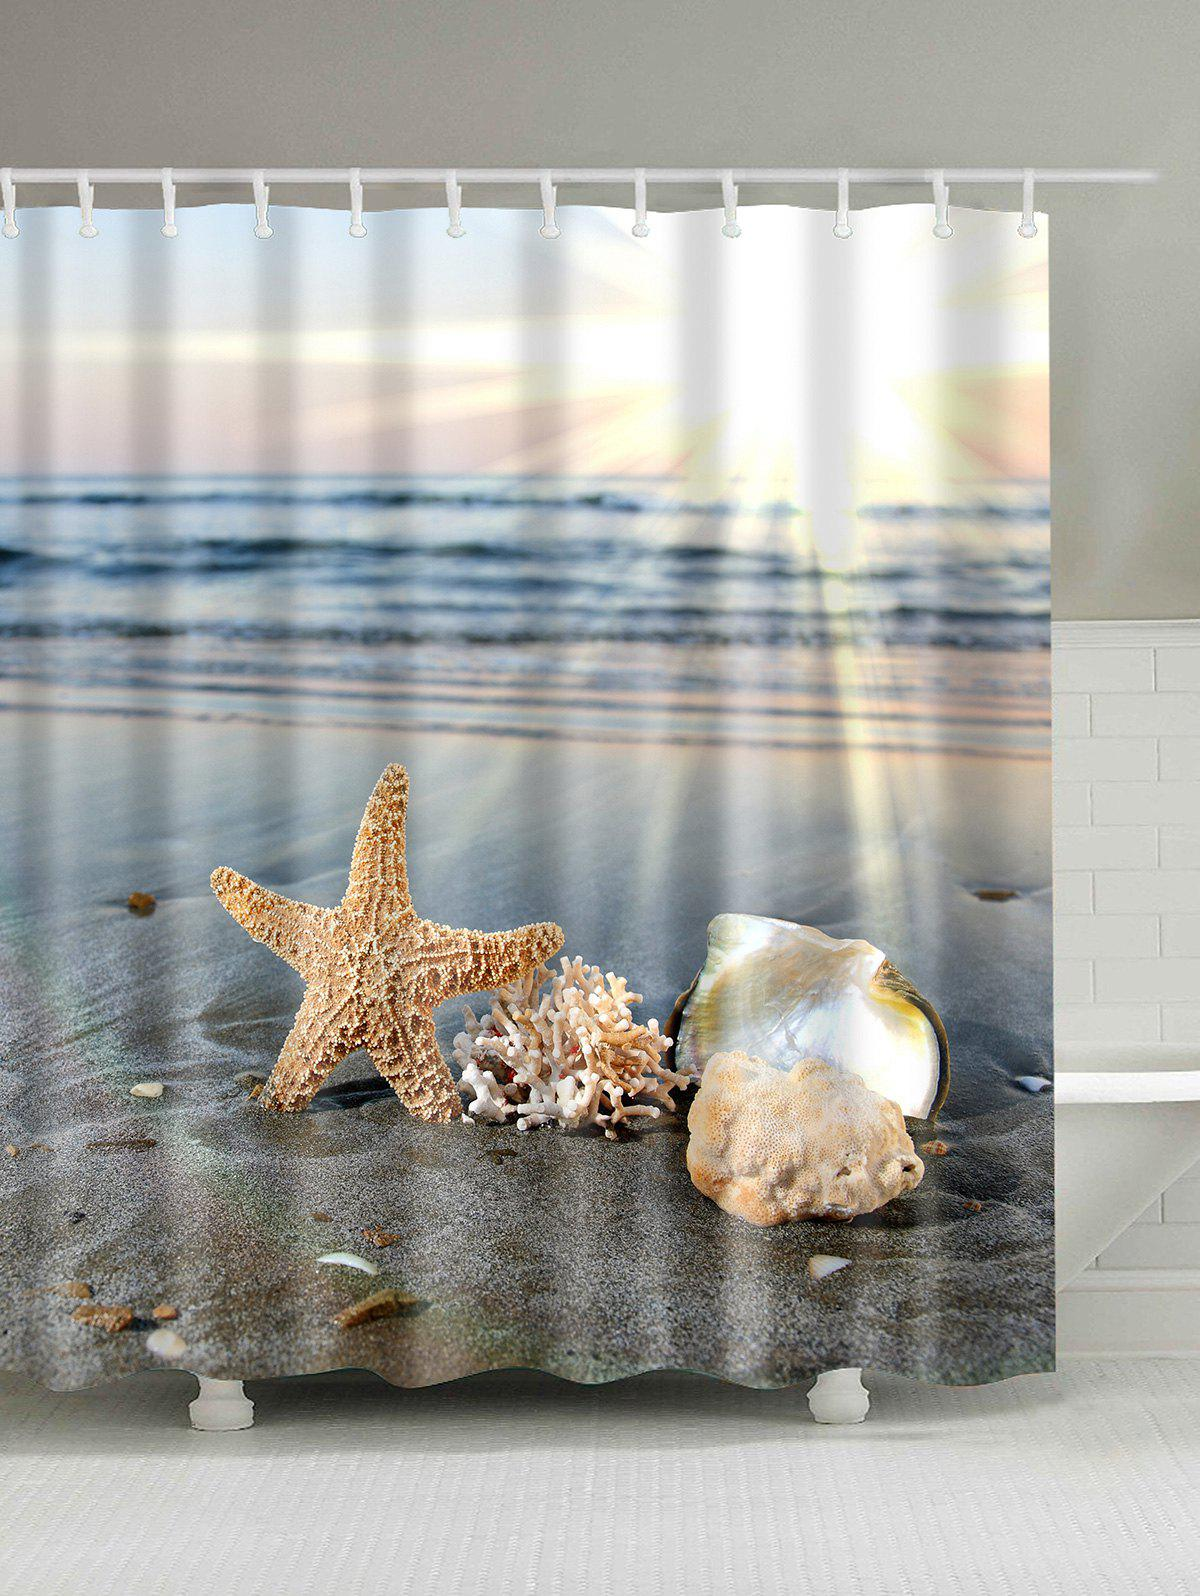 Sunny Beach Print Waterproof Shower CurtainHOME<br><br>Size: 180*180CM; Color: COLORMIX; Products Type: Shower Curtains; Materials: Polyester; Style: Beach Style; Number of Hook Holes: W59inch*L71inch: 10;  W71inch*L71inch: 12;  W71inch*L79inch: 12.; Weight: 0.5400kg; Package Contents: 1 x Shower Curtain 1 x Hooks(Set);